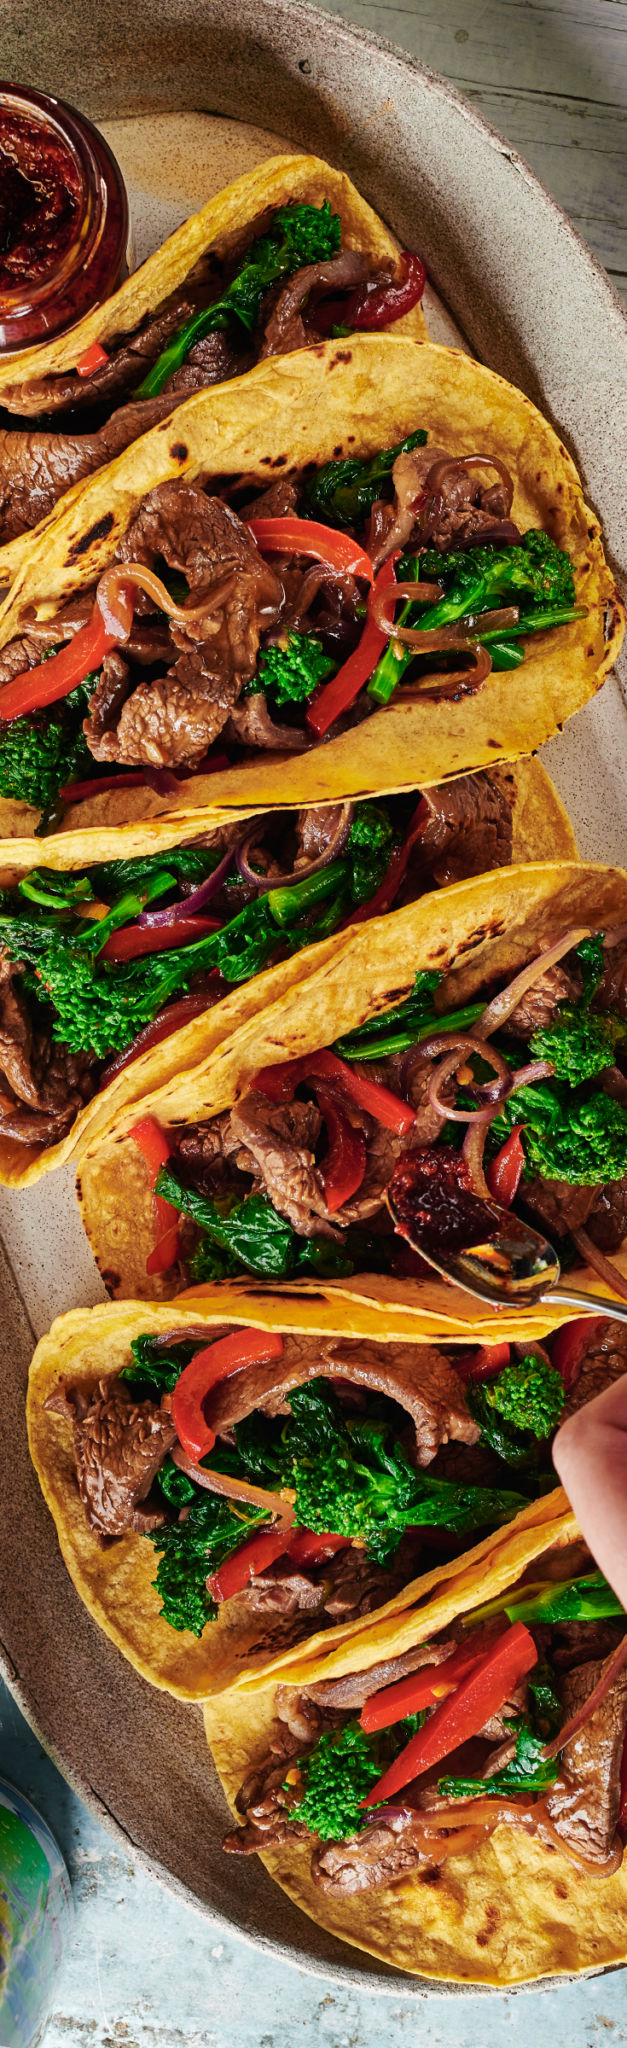 Korean Beef Tacos with Broccoli Rabe